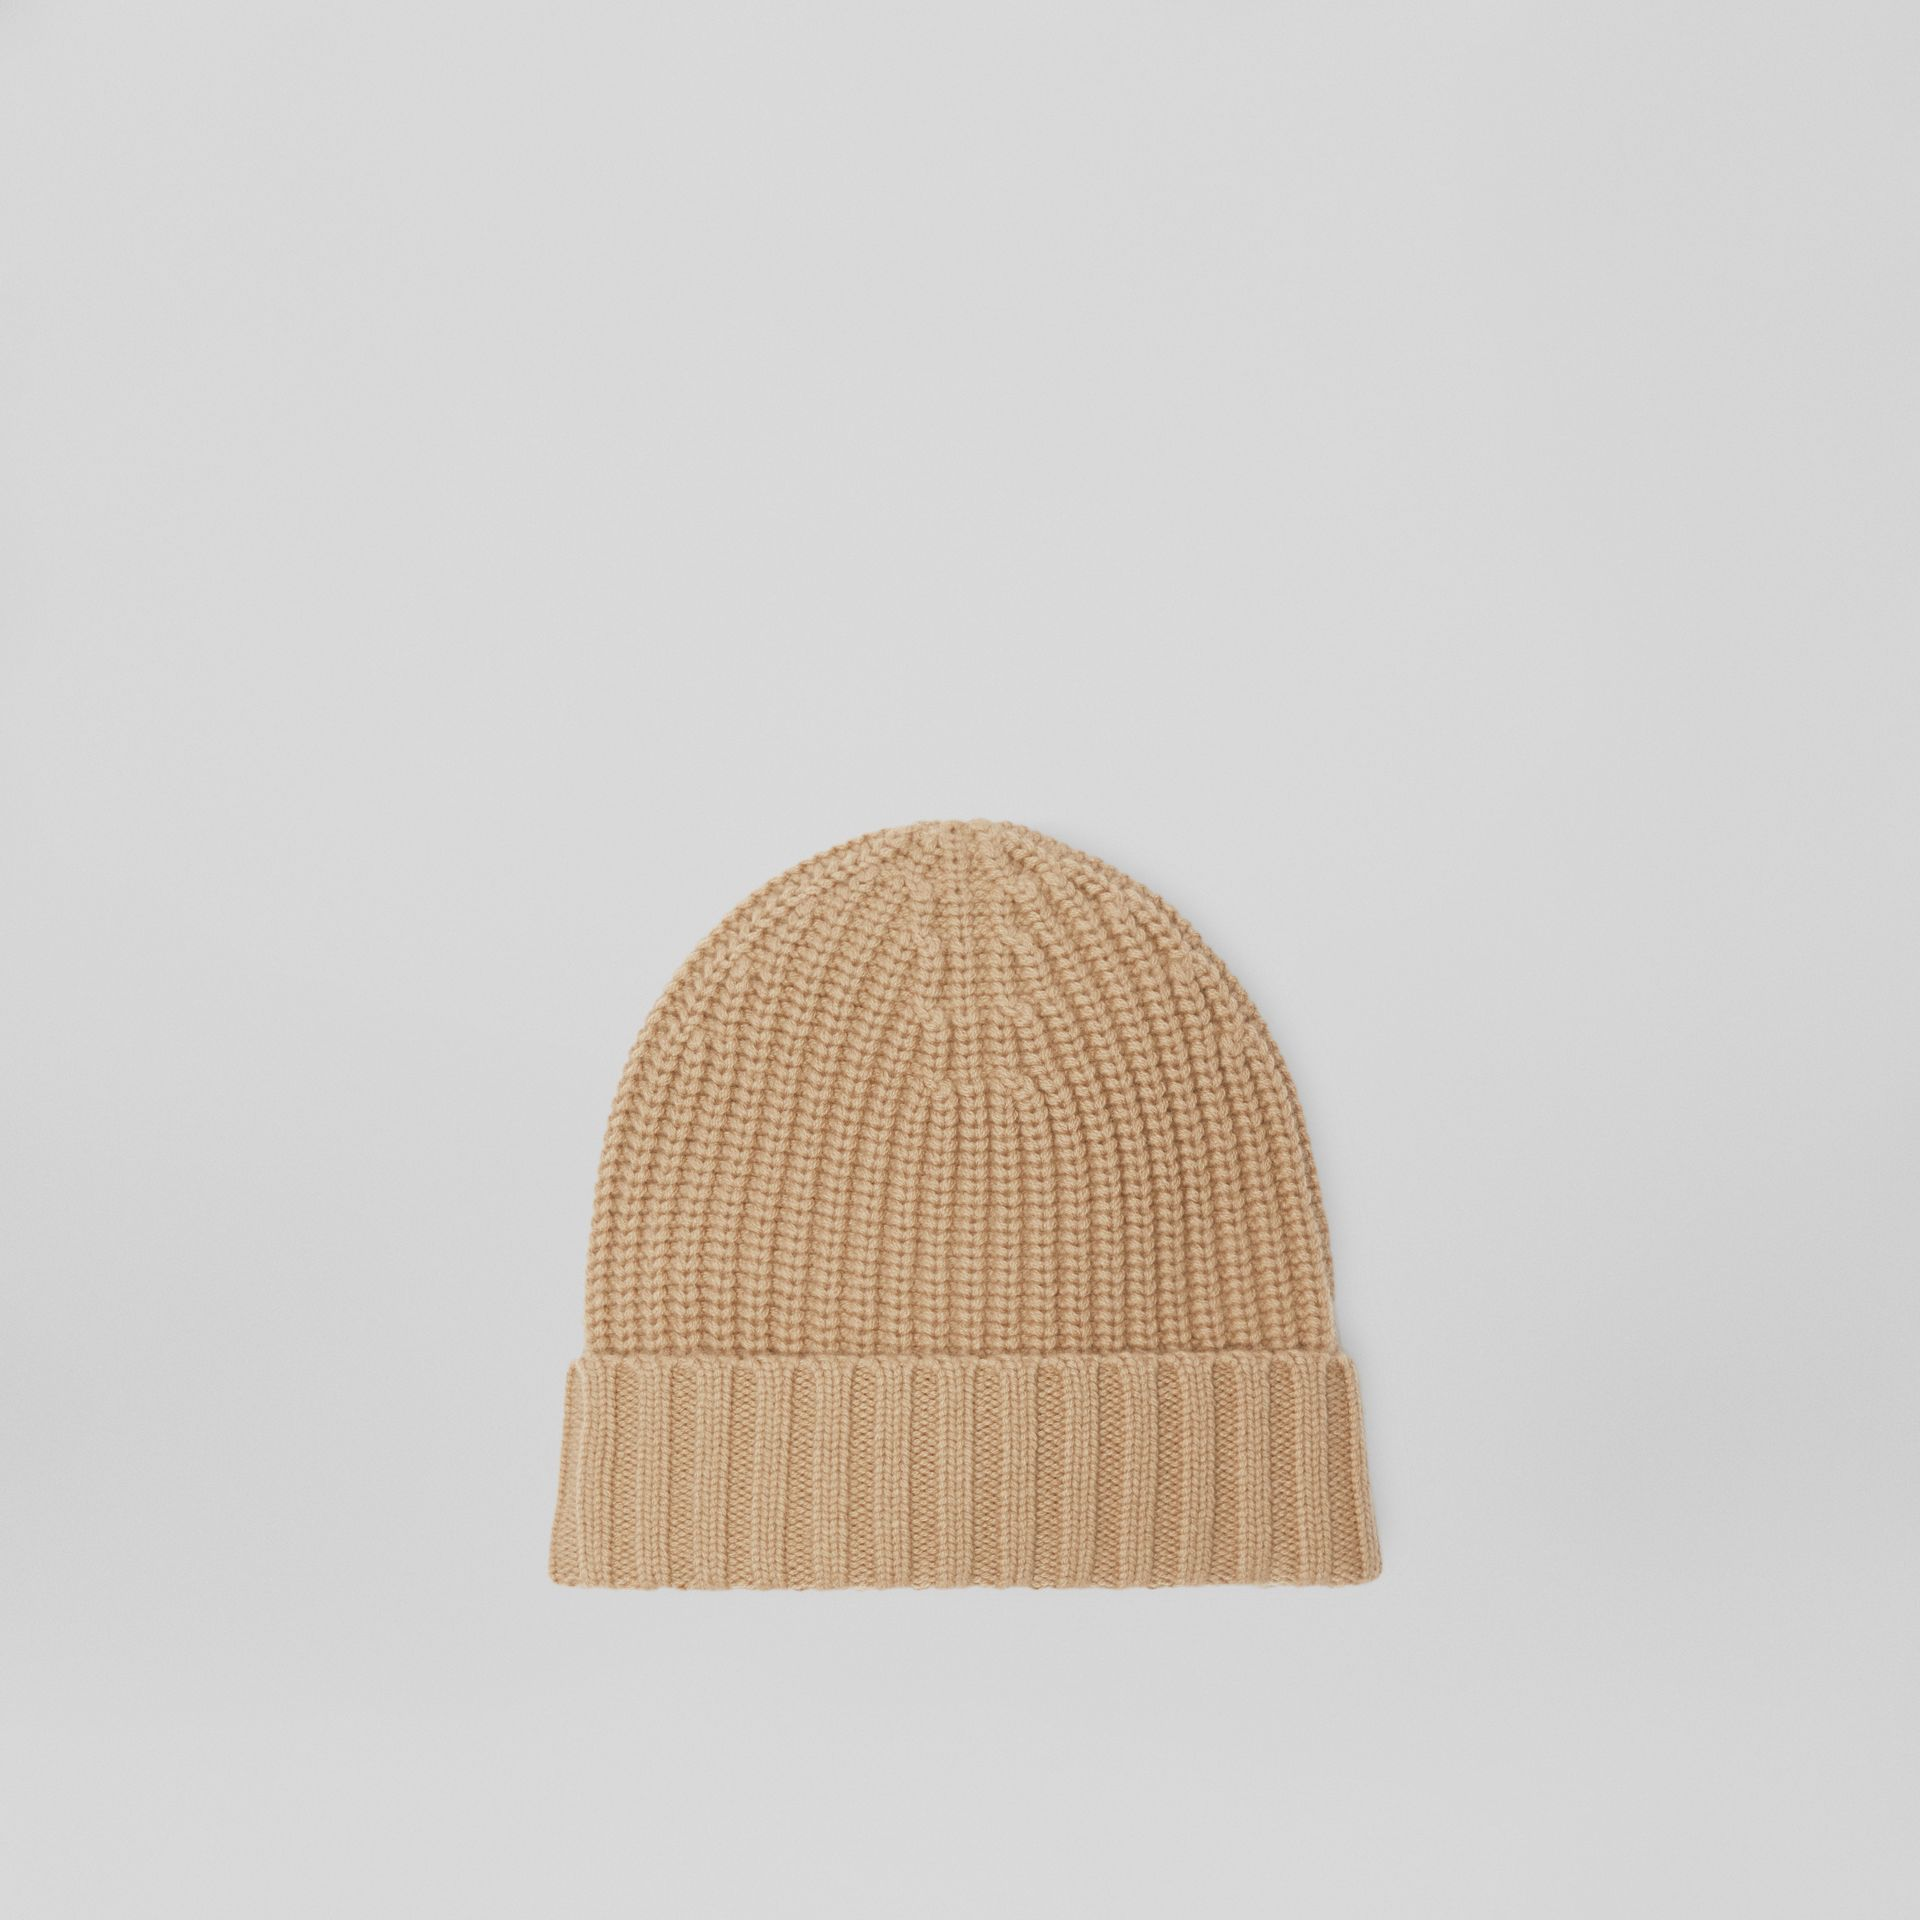 Embroidered Crest Rib Knit Wool Cashmere Beanie in Sand | Burberry - gallery image 4